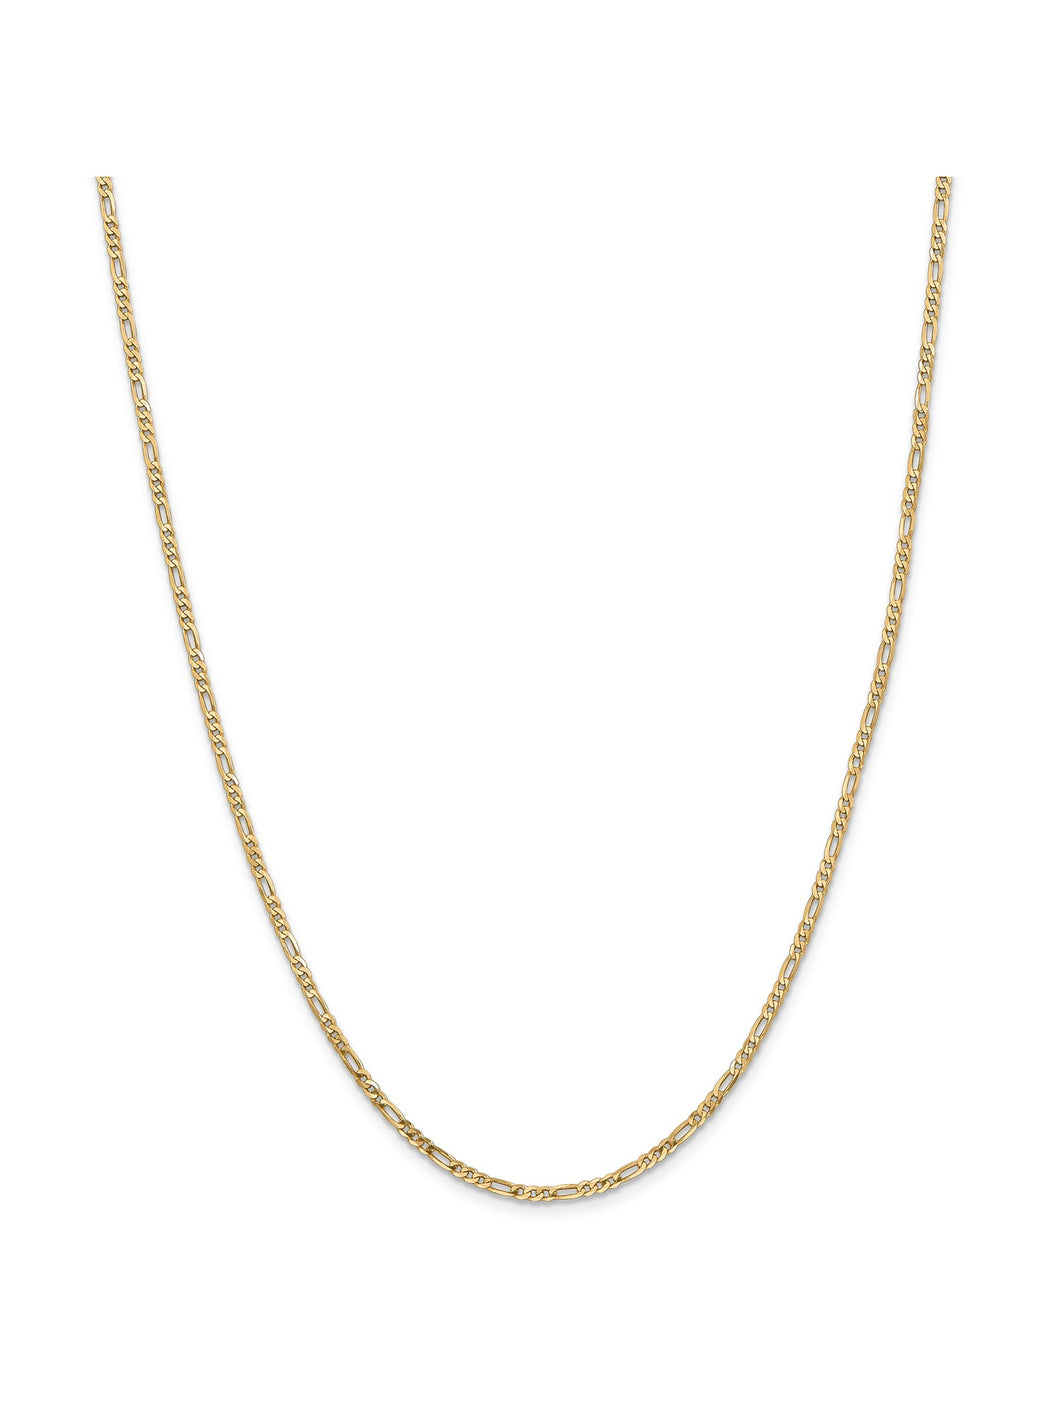 14k Yellow Gold 2.25mm Flat Figaro Chain Necklace